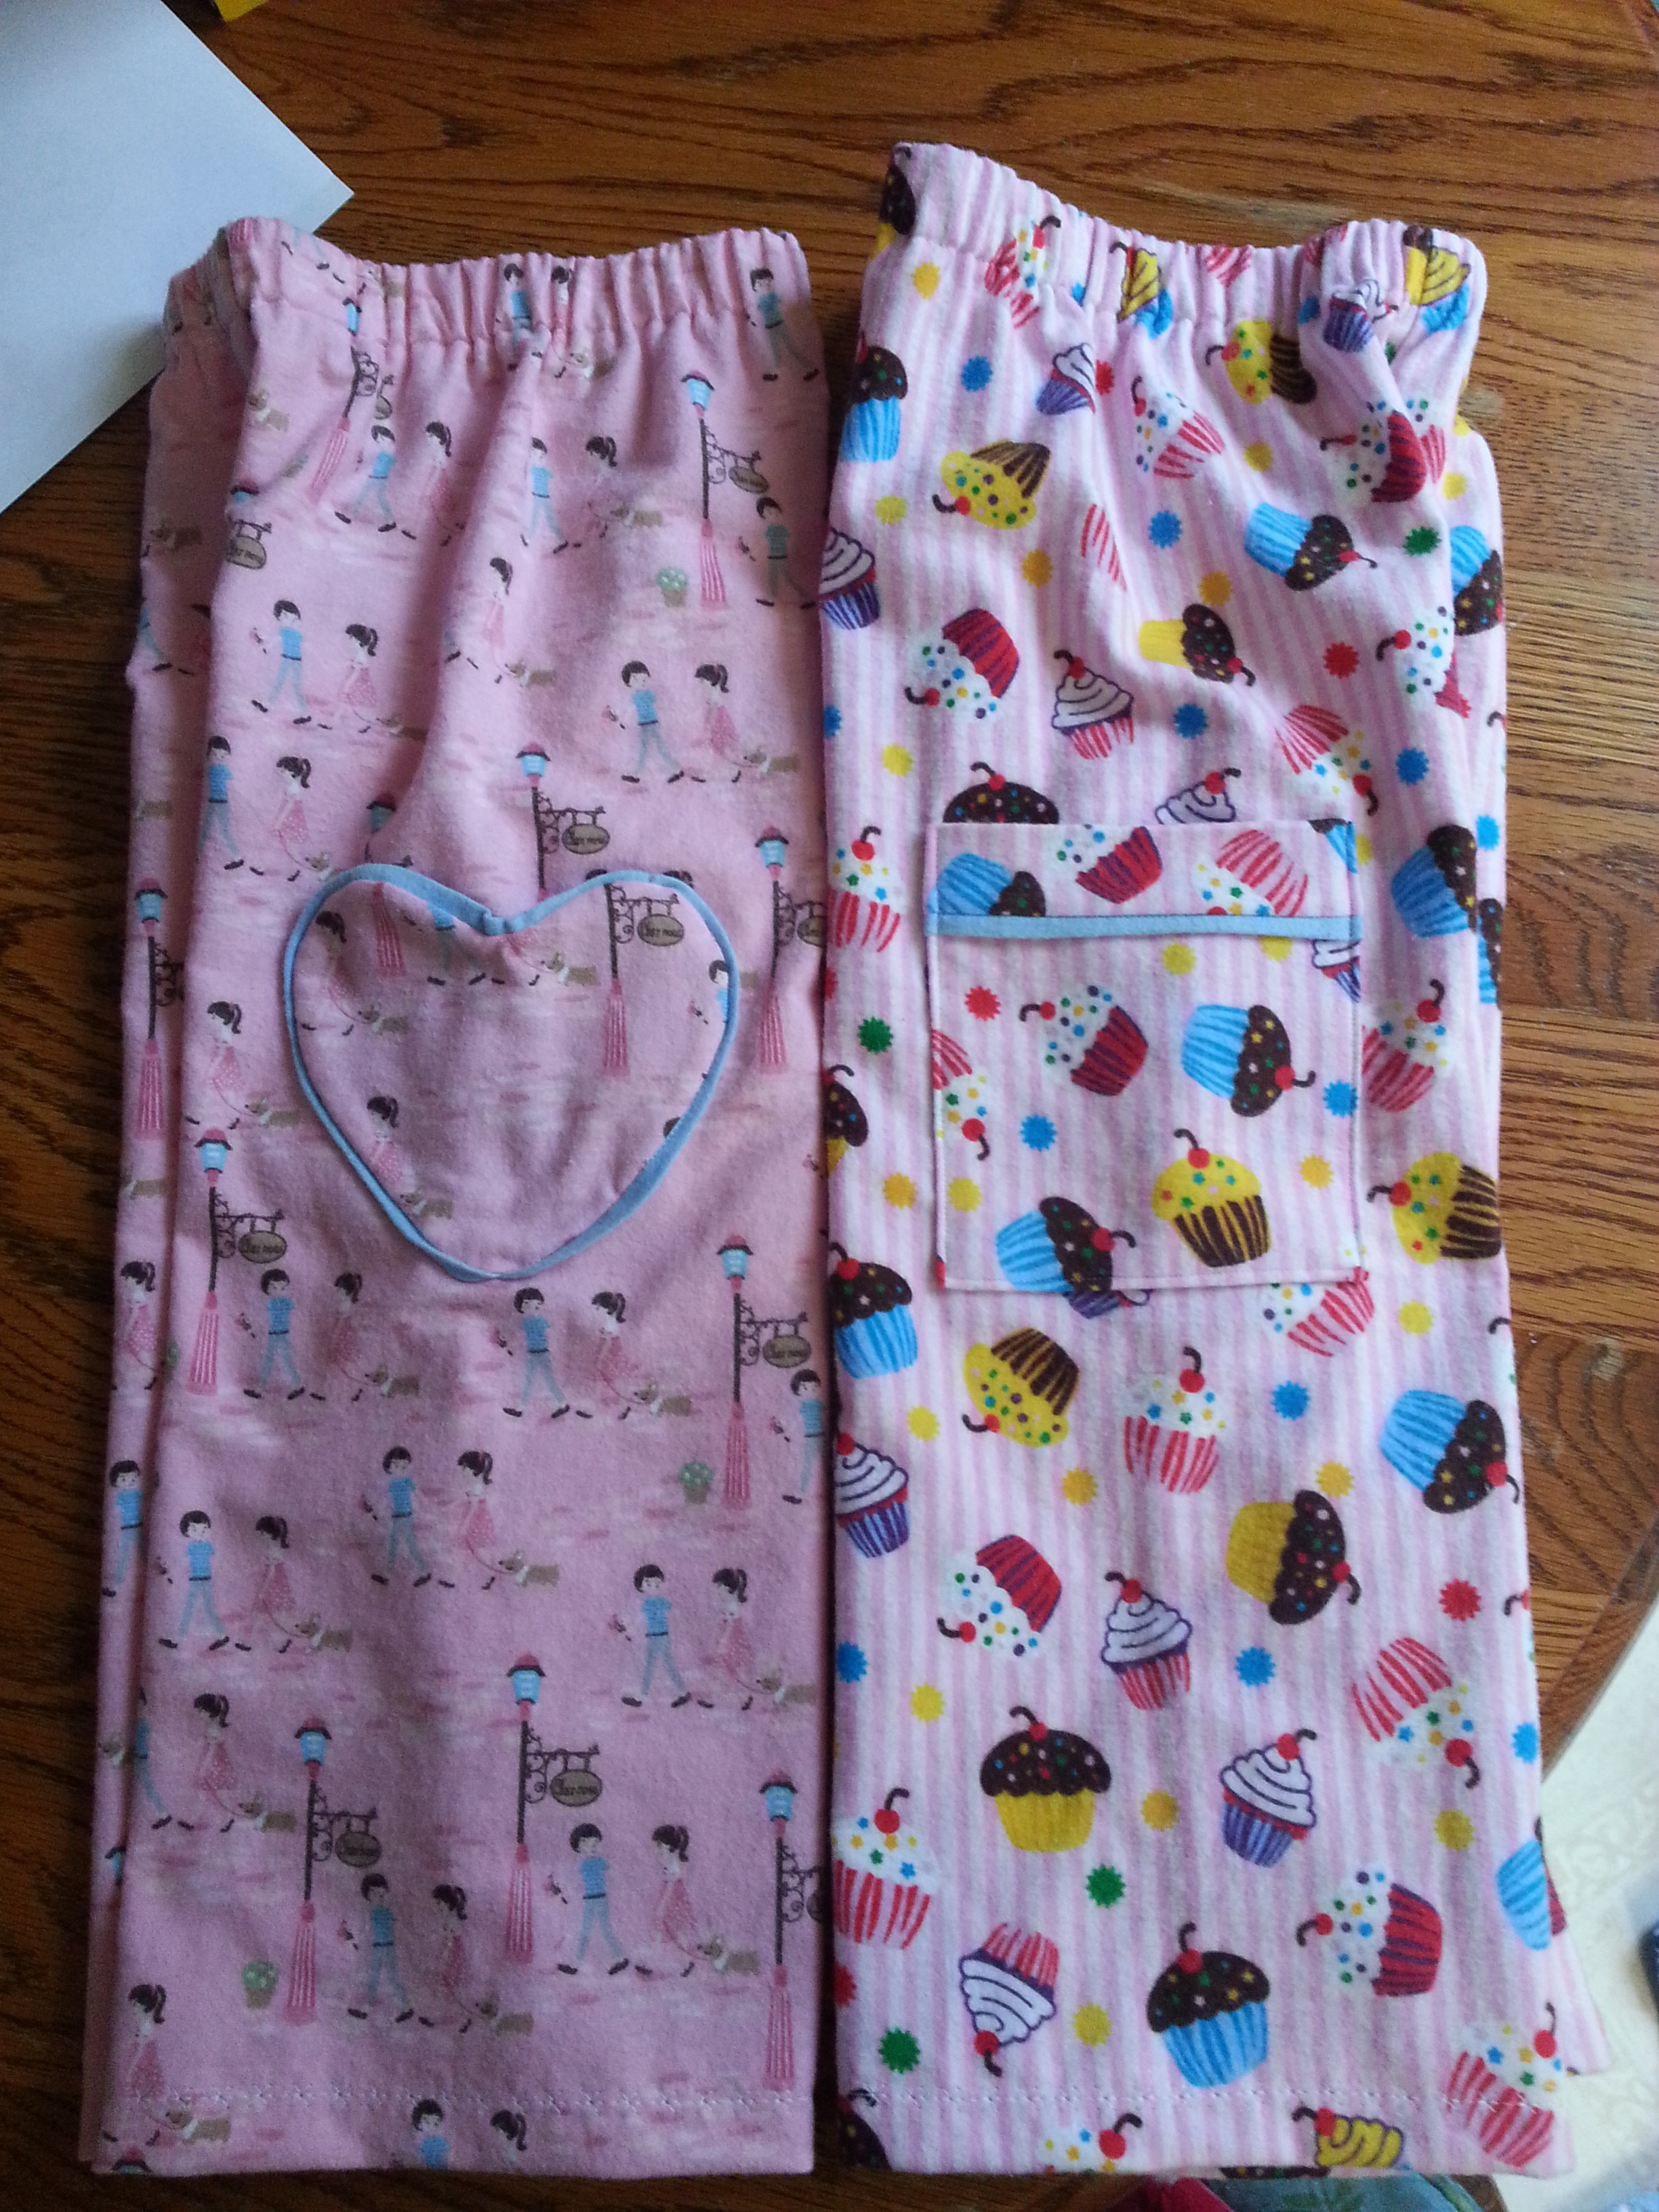 These are L's pajama pants. She loves pink.